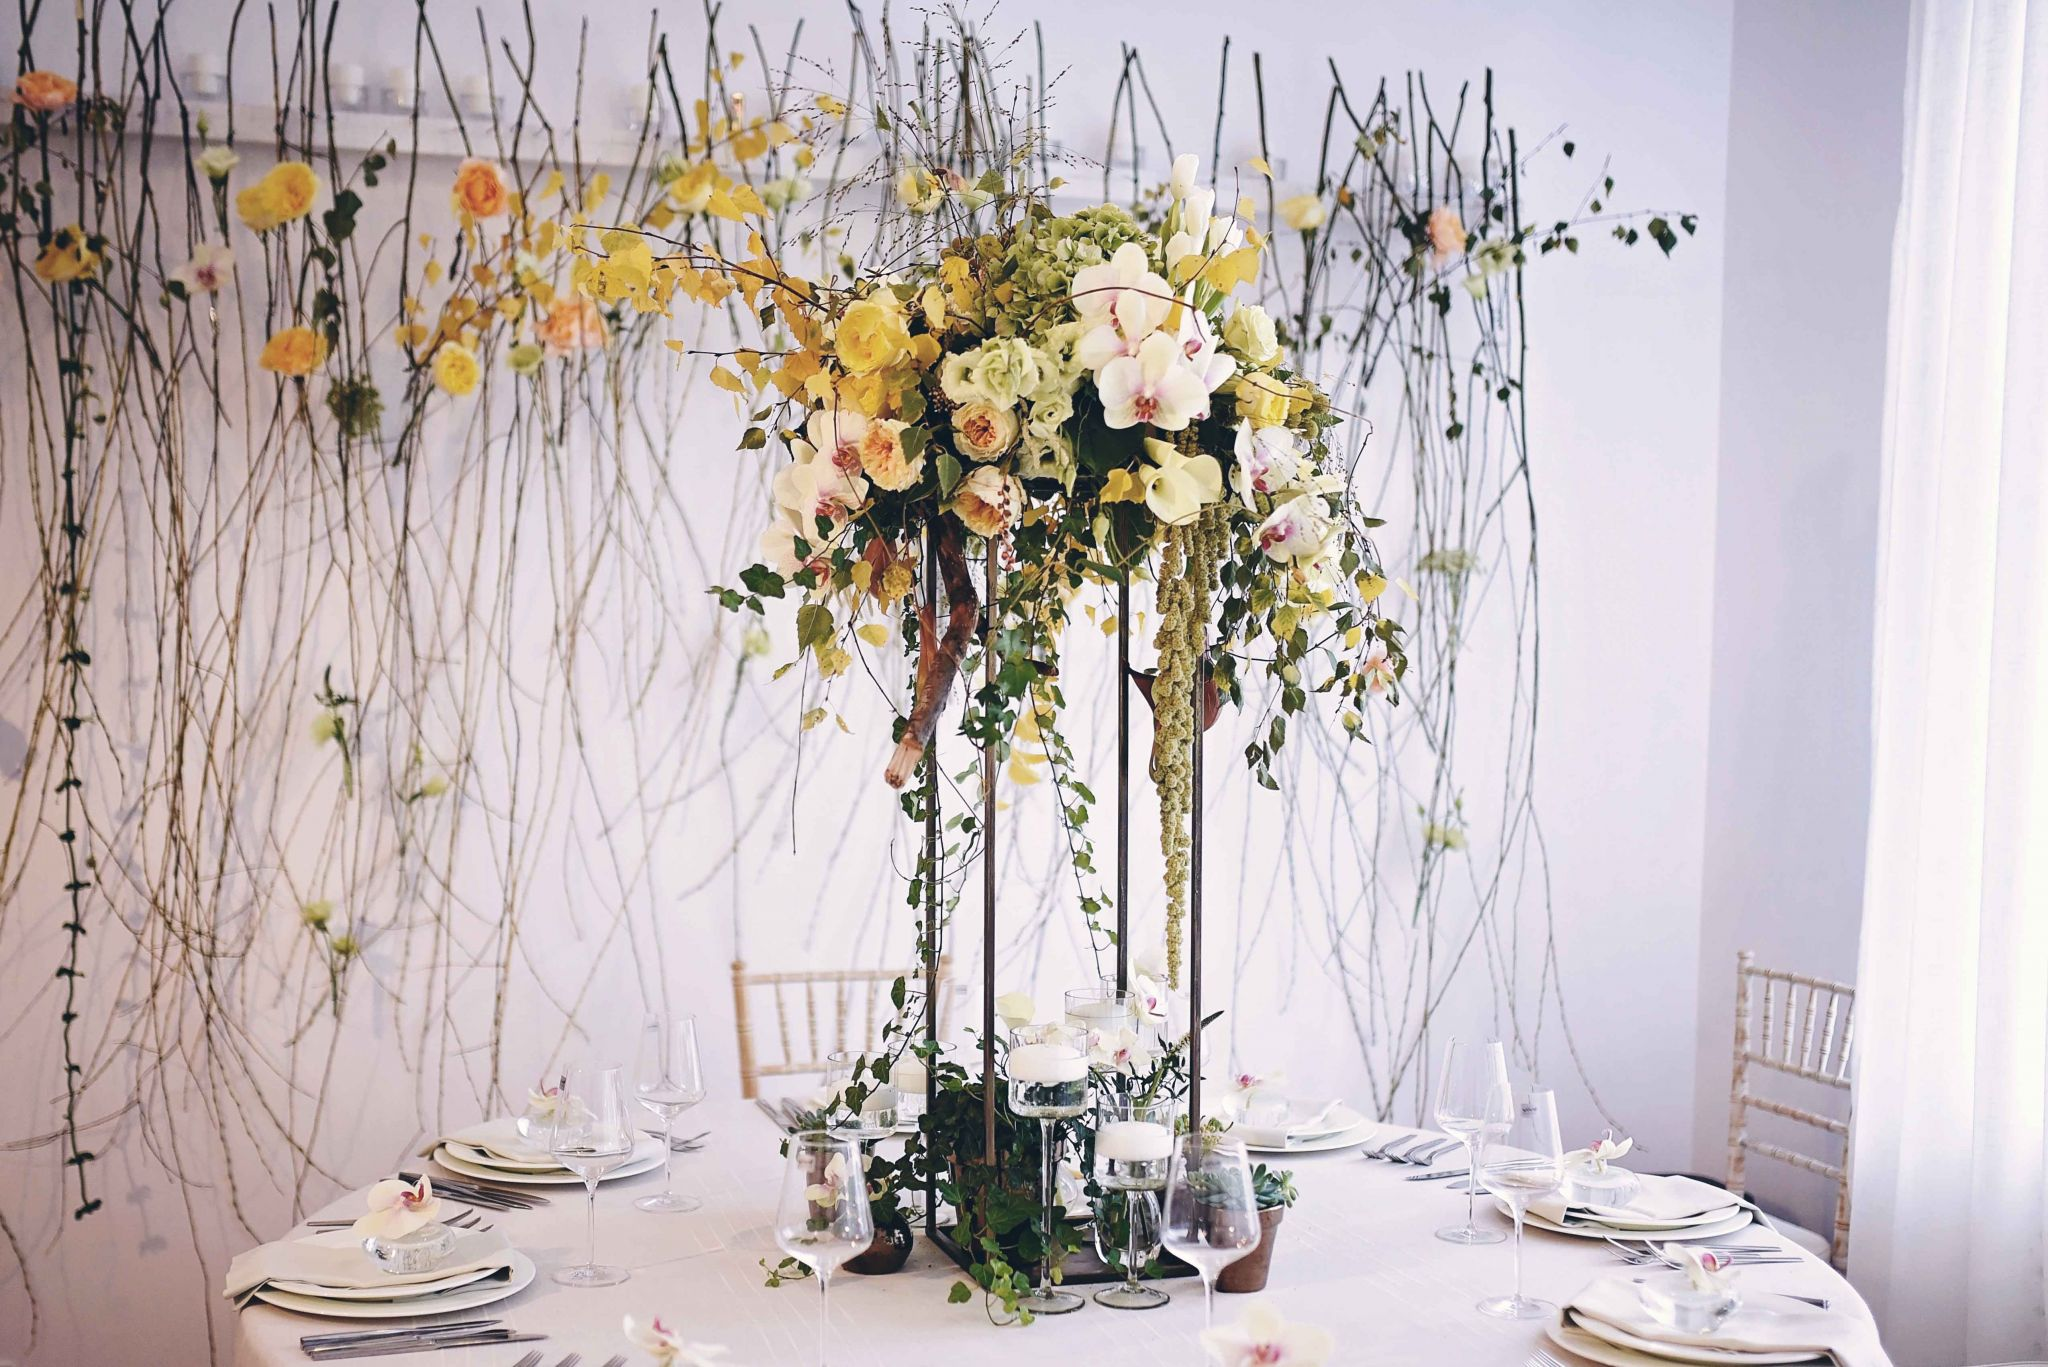 The wedding gallery iris floral shop the most breathtaking room that impressed me beyond words was the wedding in an attic already available for cosy events for up to 70 guests izmirmasajfo